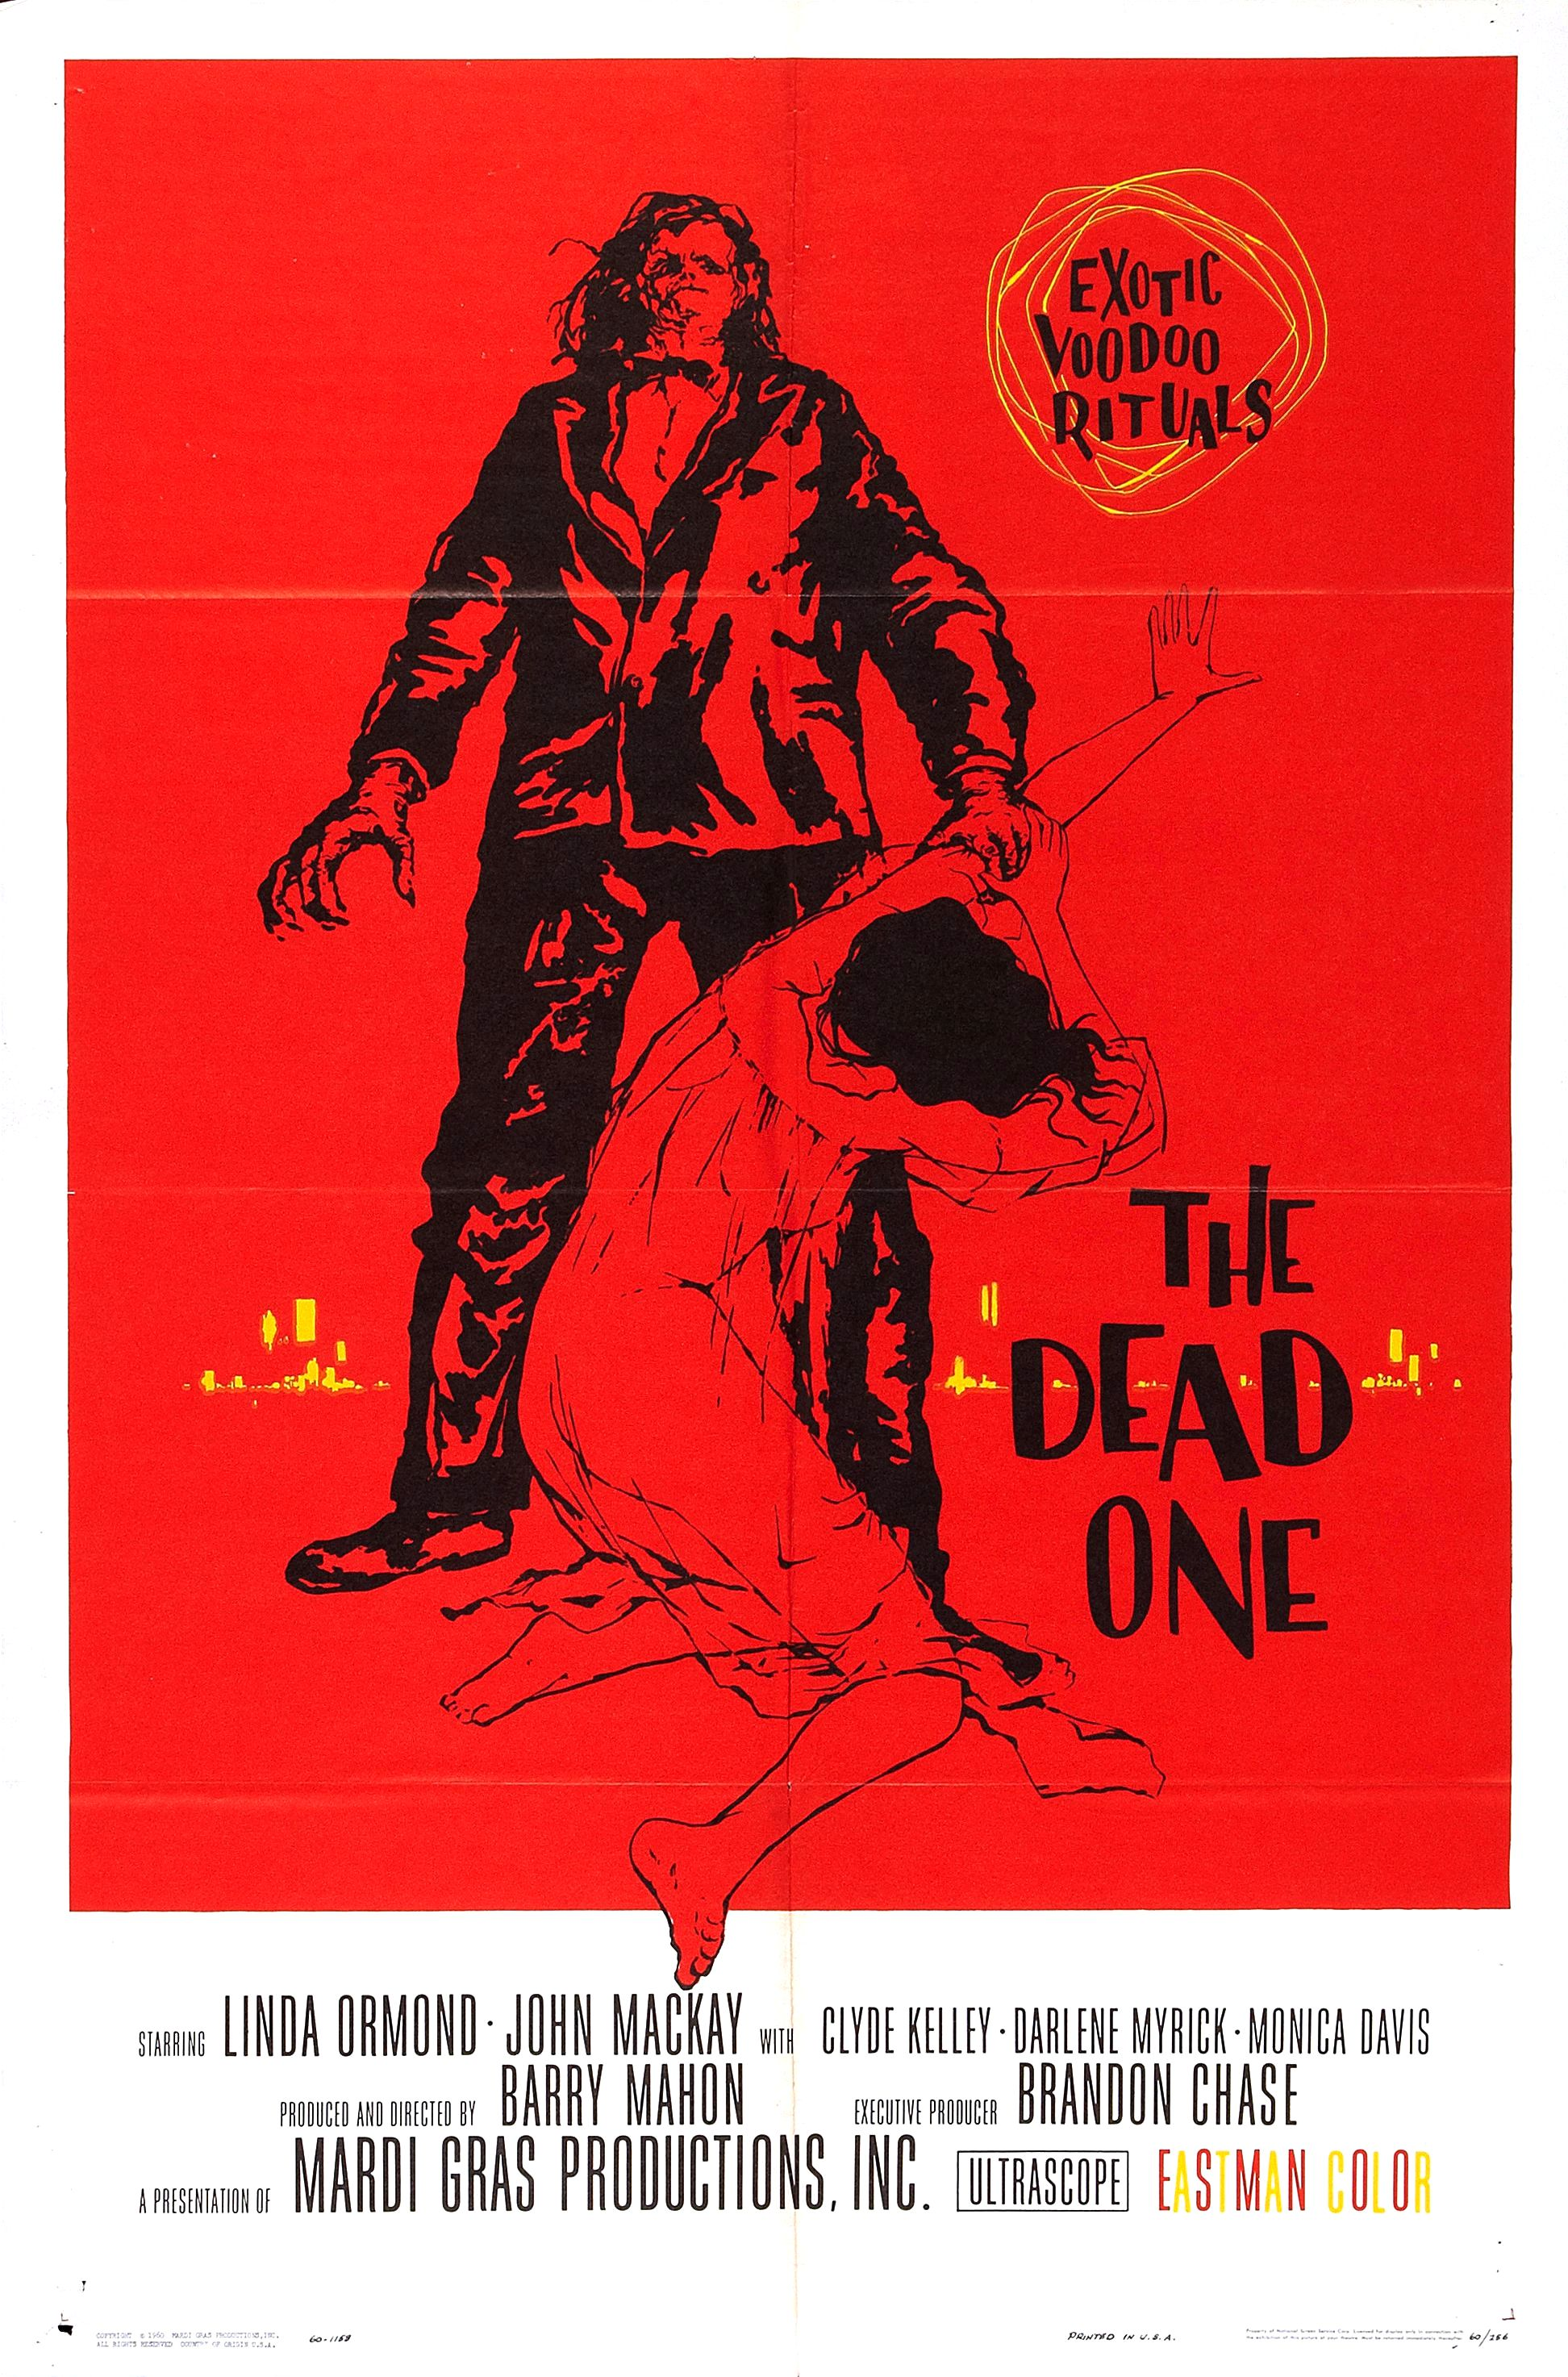 The Dead One 1kite44